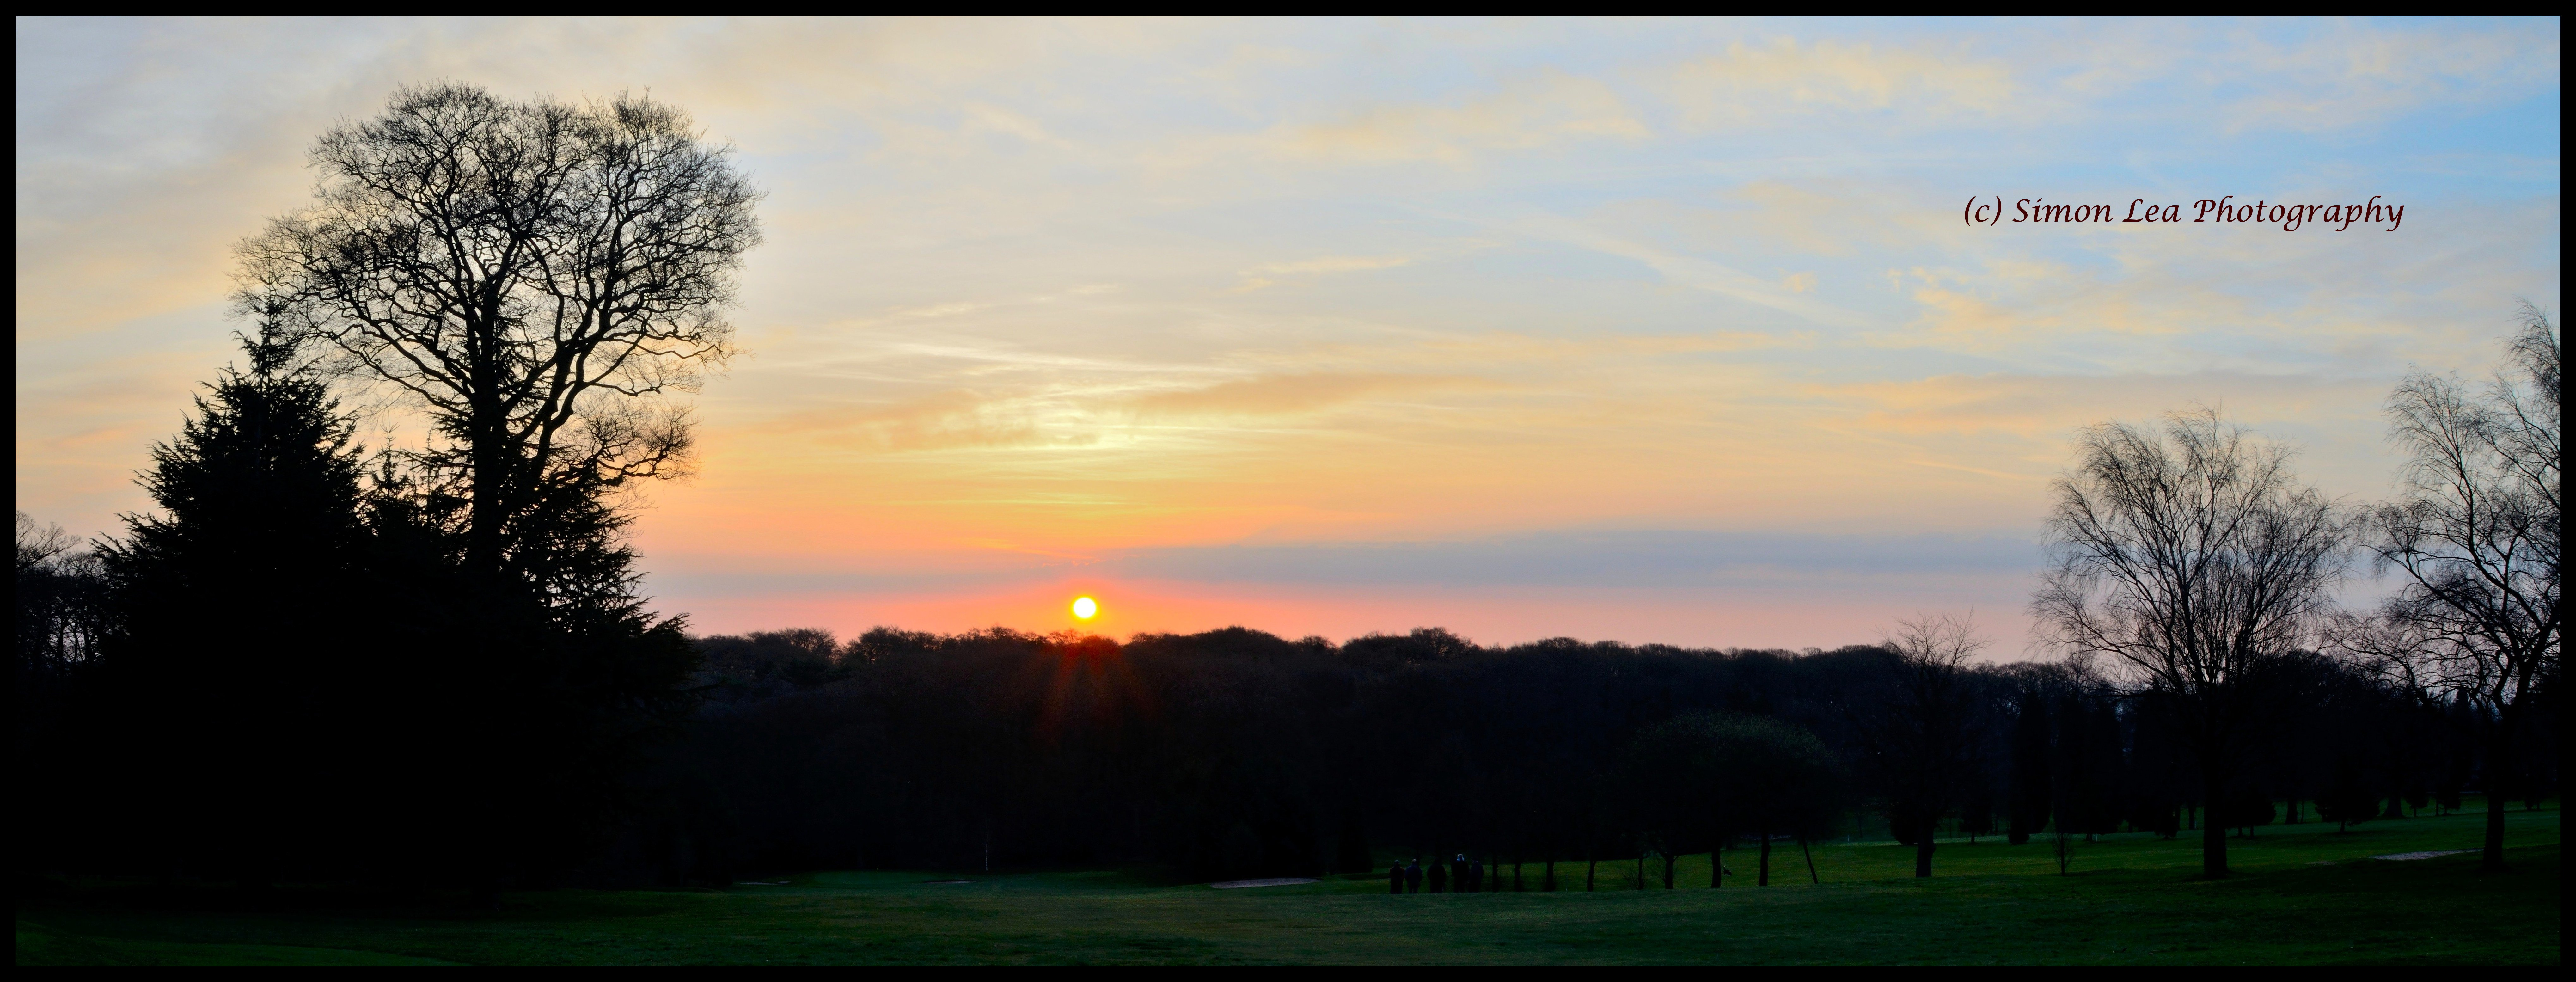 Warley Woods: Sunrise to Sunset in Spring | The Bearwood Blog